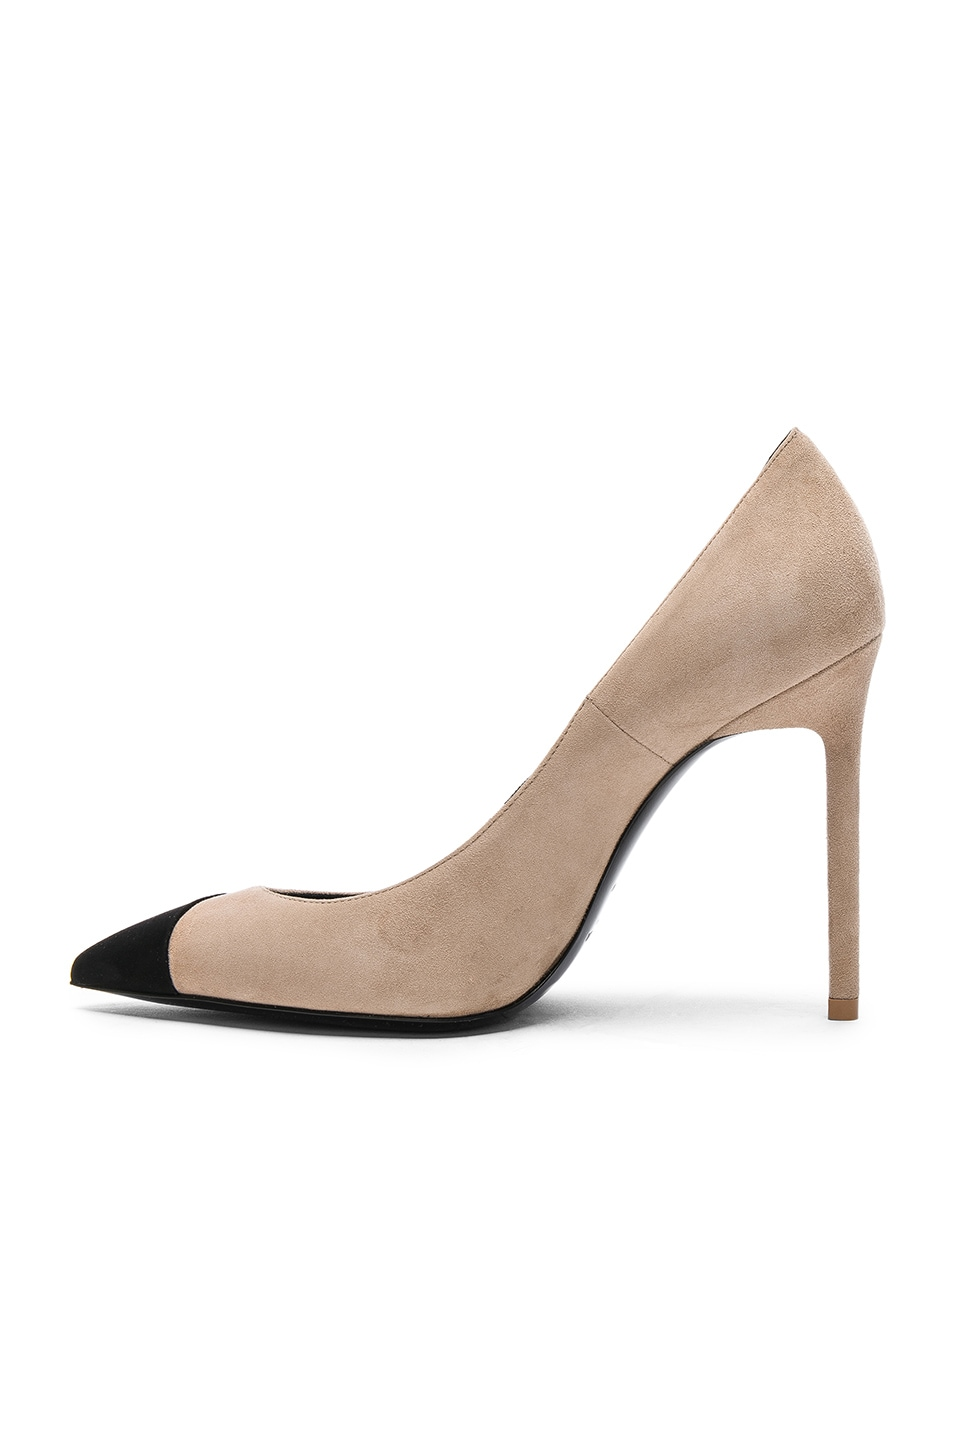 Saint Laurent Suede Anja Cap Toe Pumps in Neutrals.